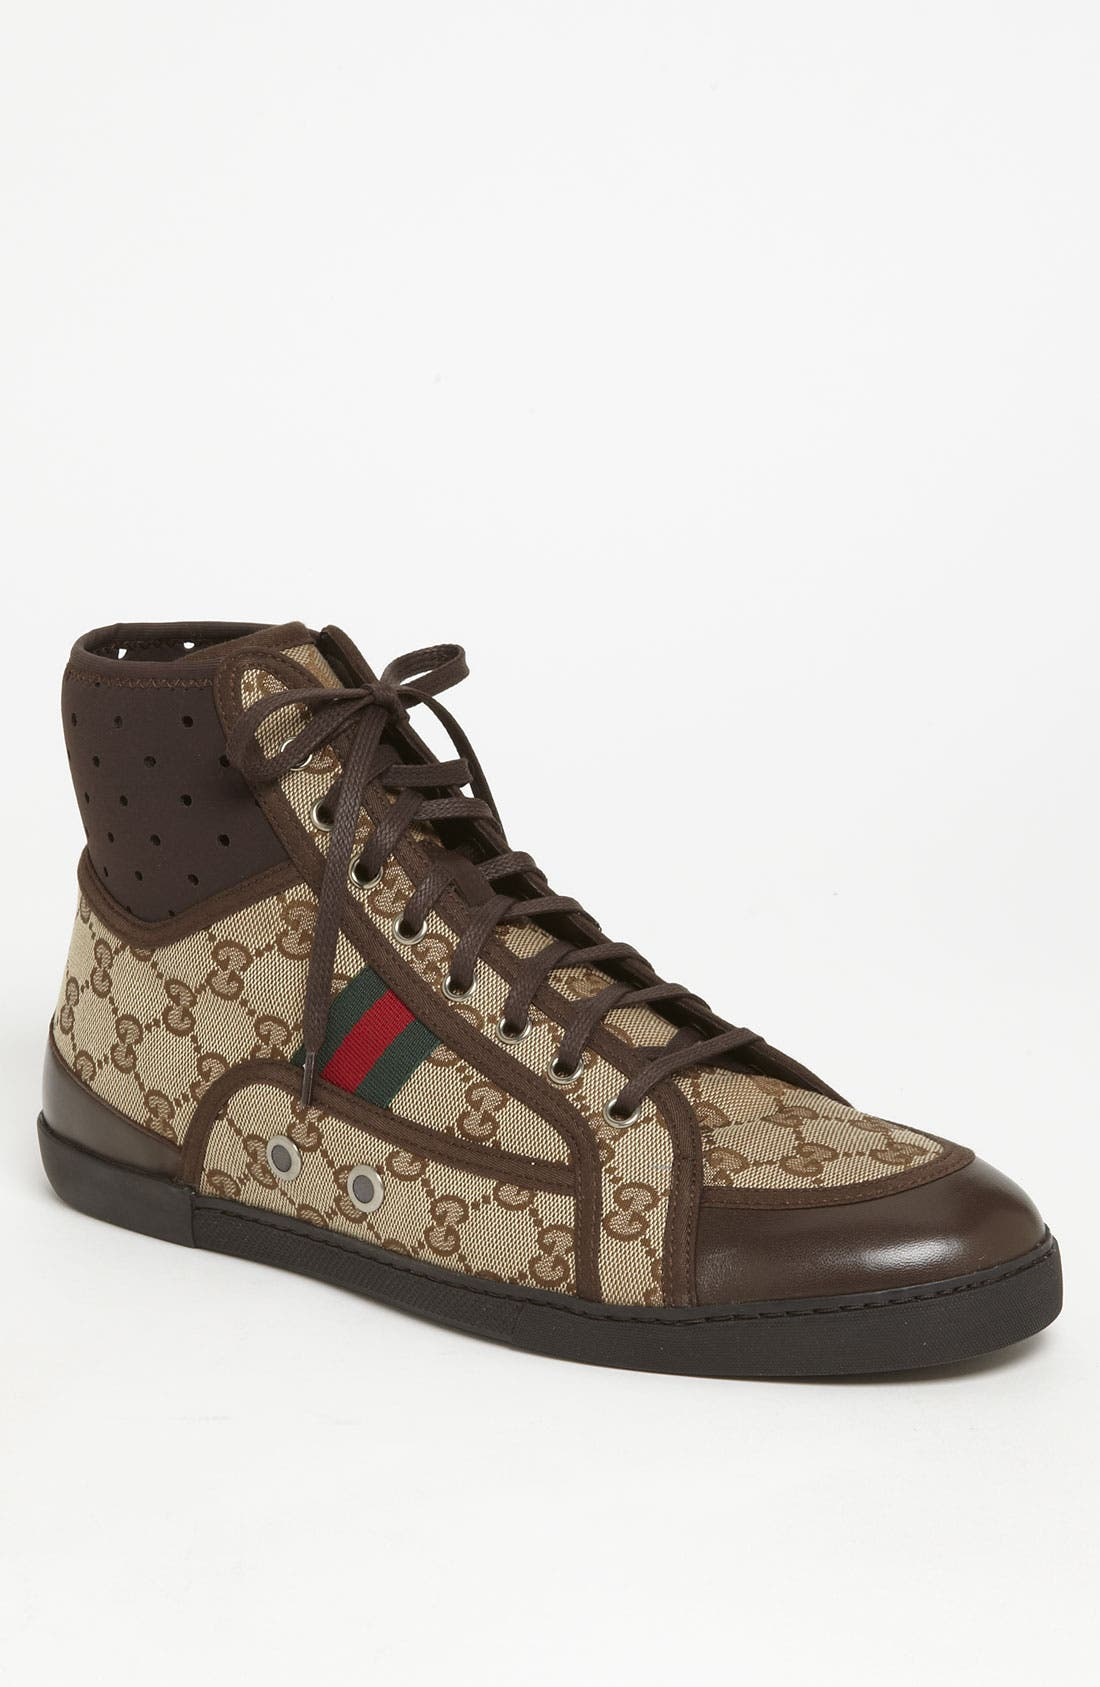 Alternate Image 1 Selected - Gucci 'Cannes' High Top Sneaker